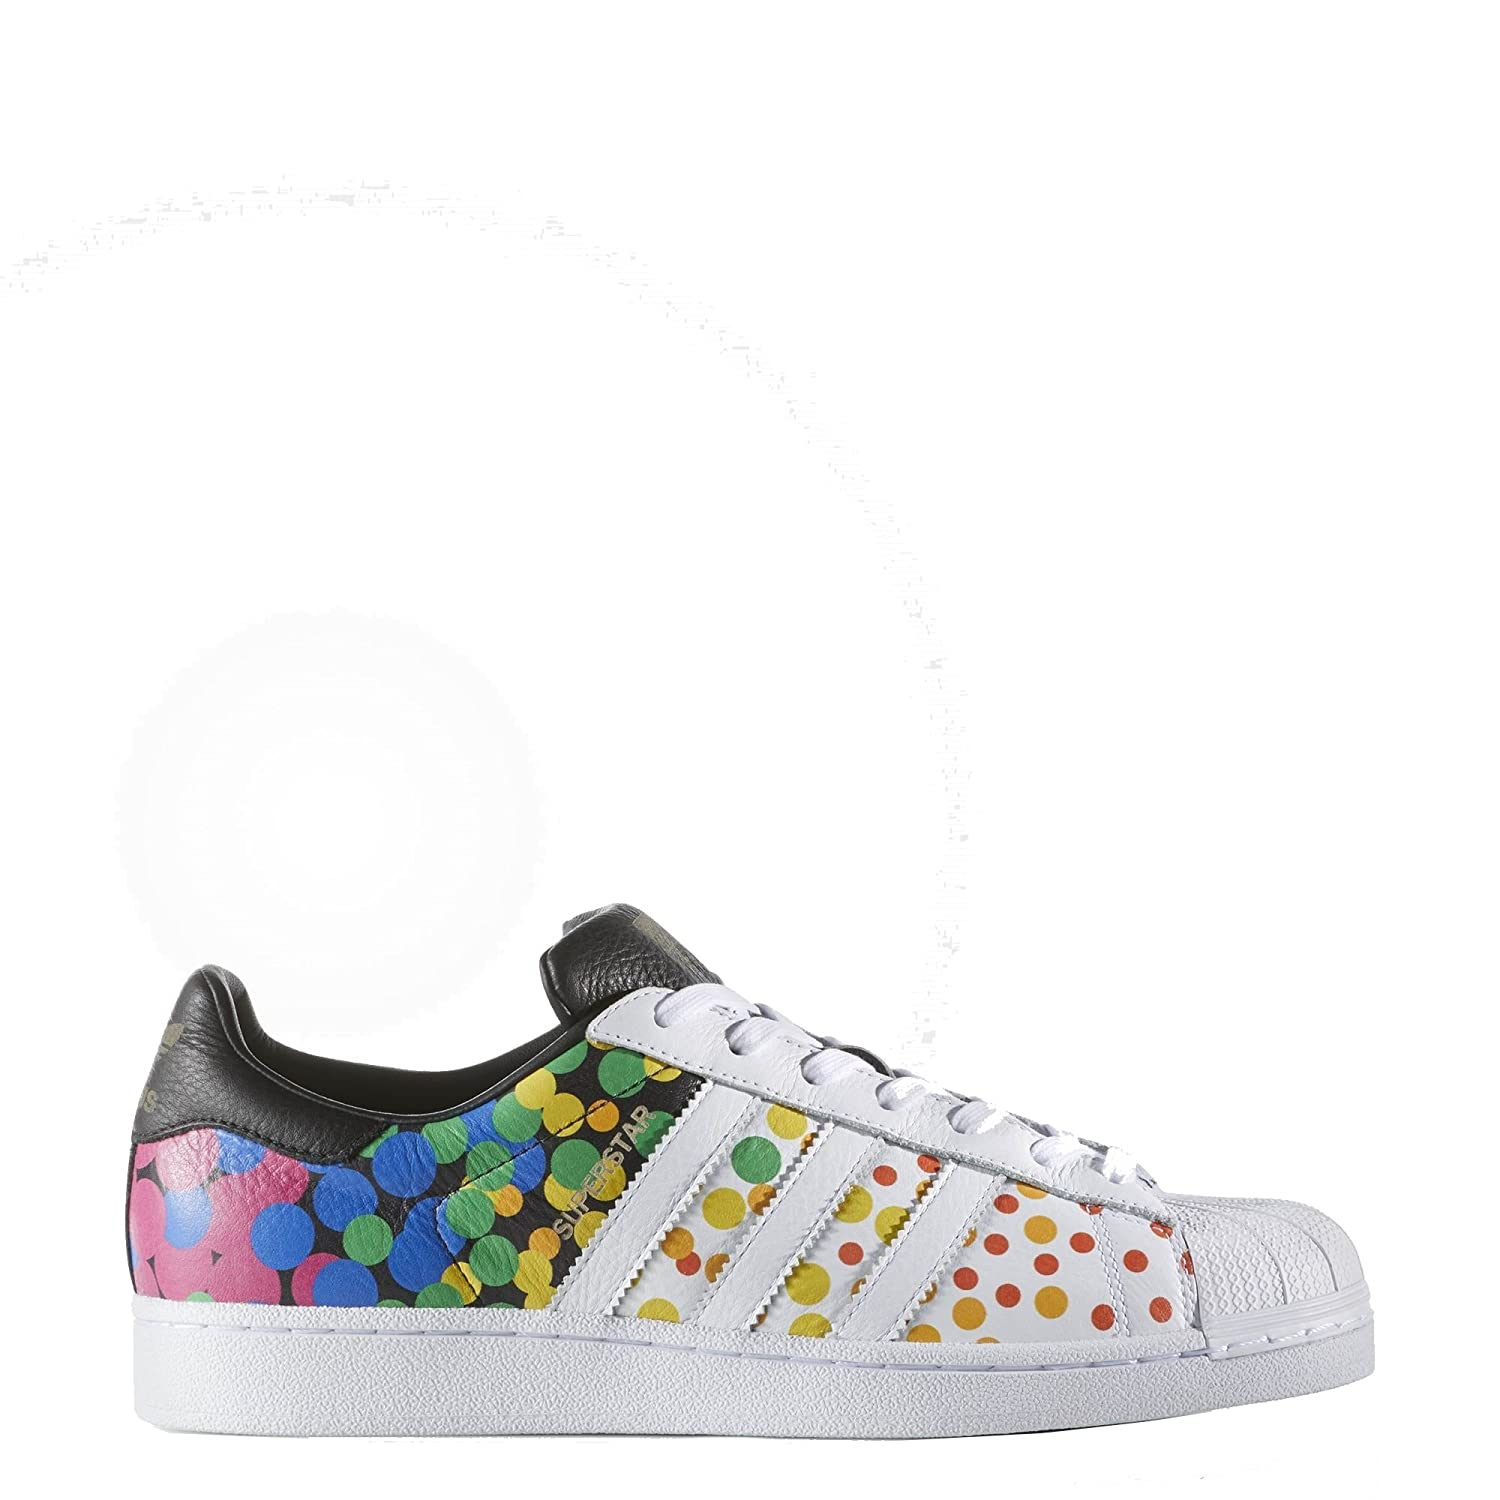 adidas Men's Superstar Pride Pack Fitness Shoes, White